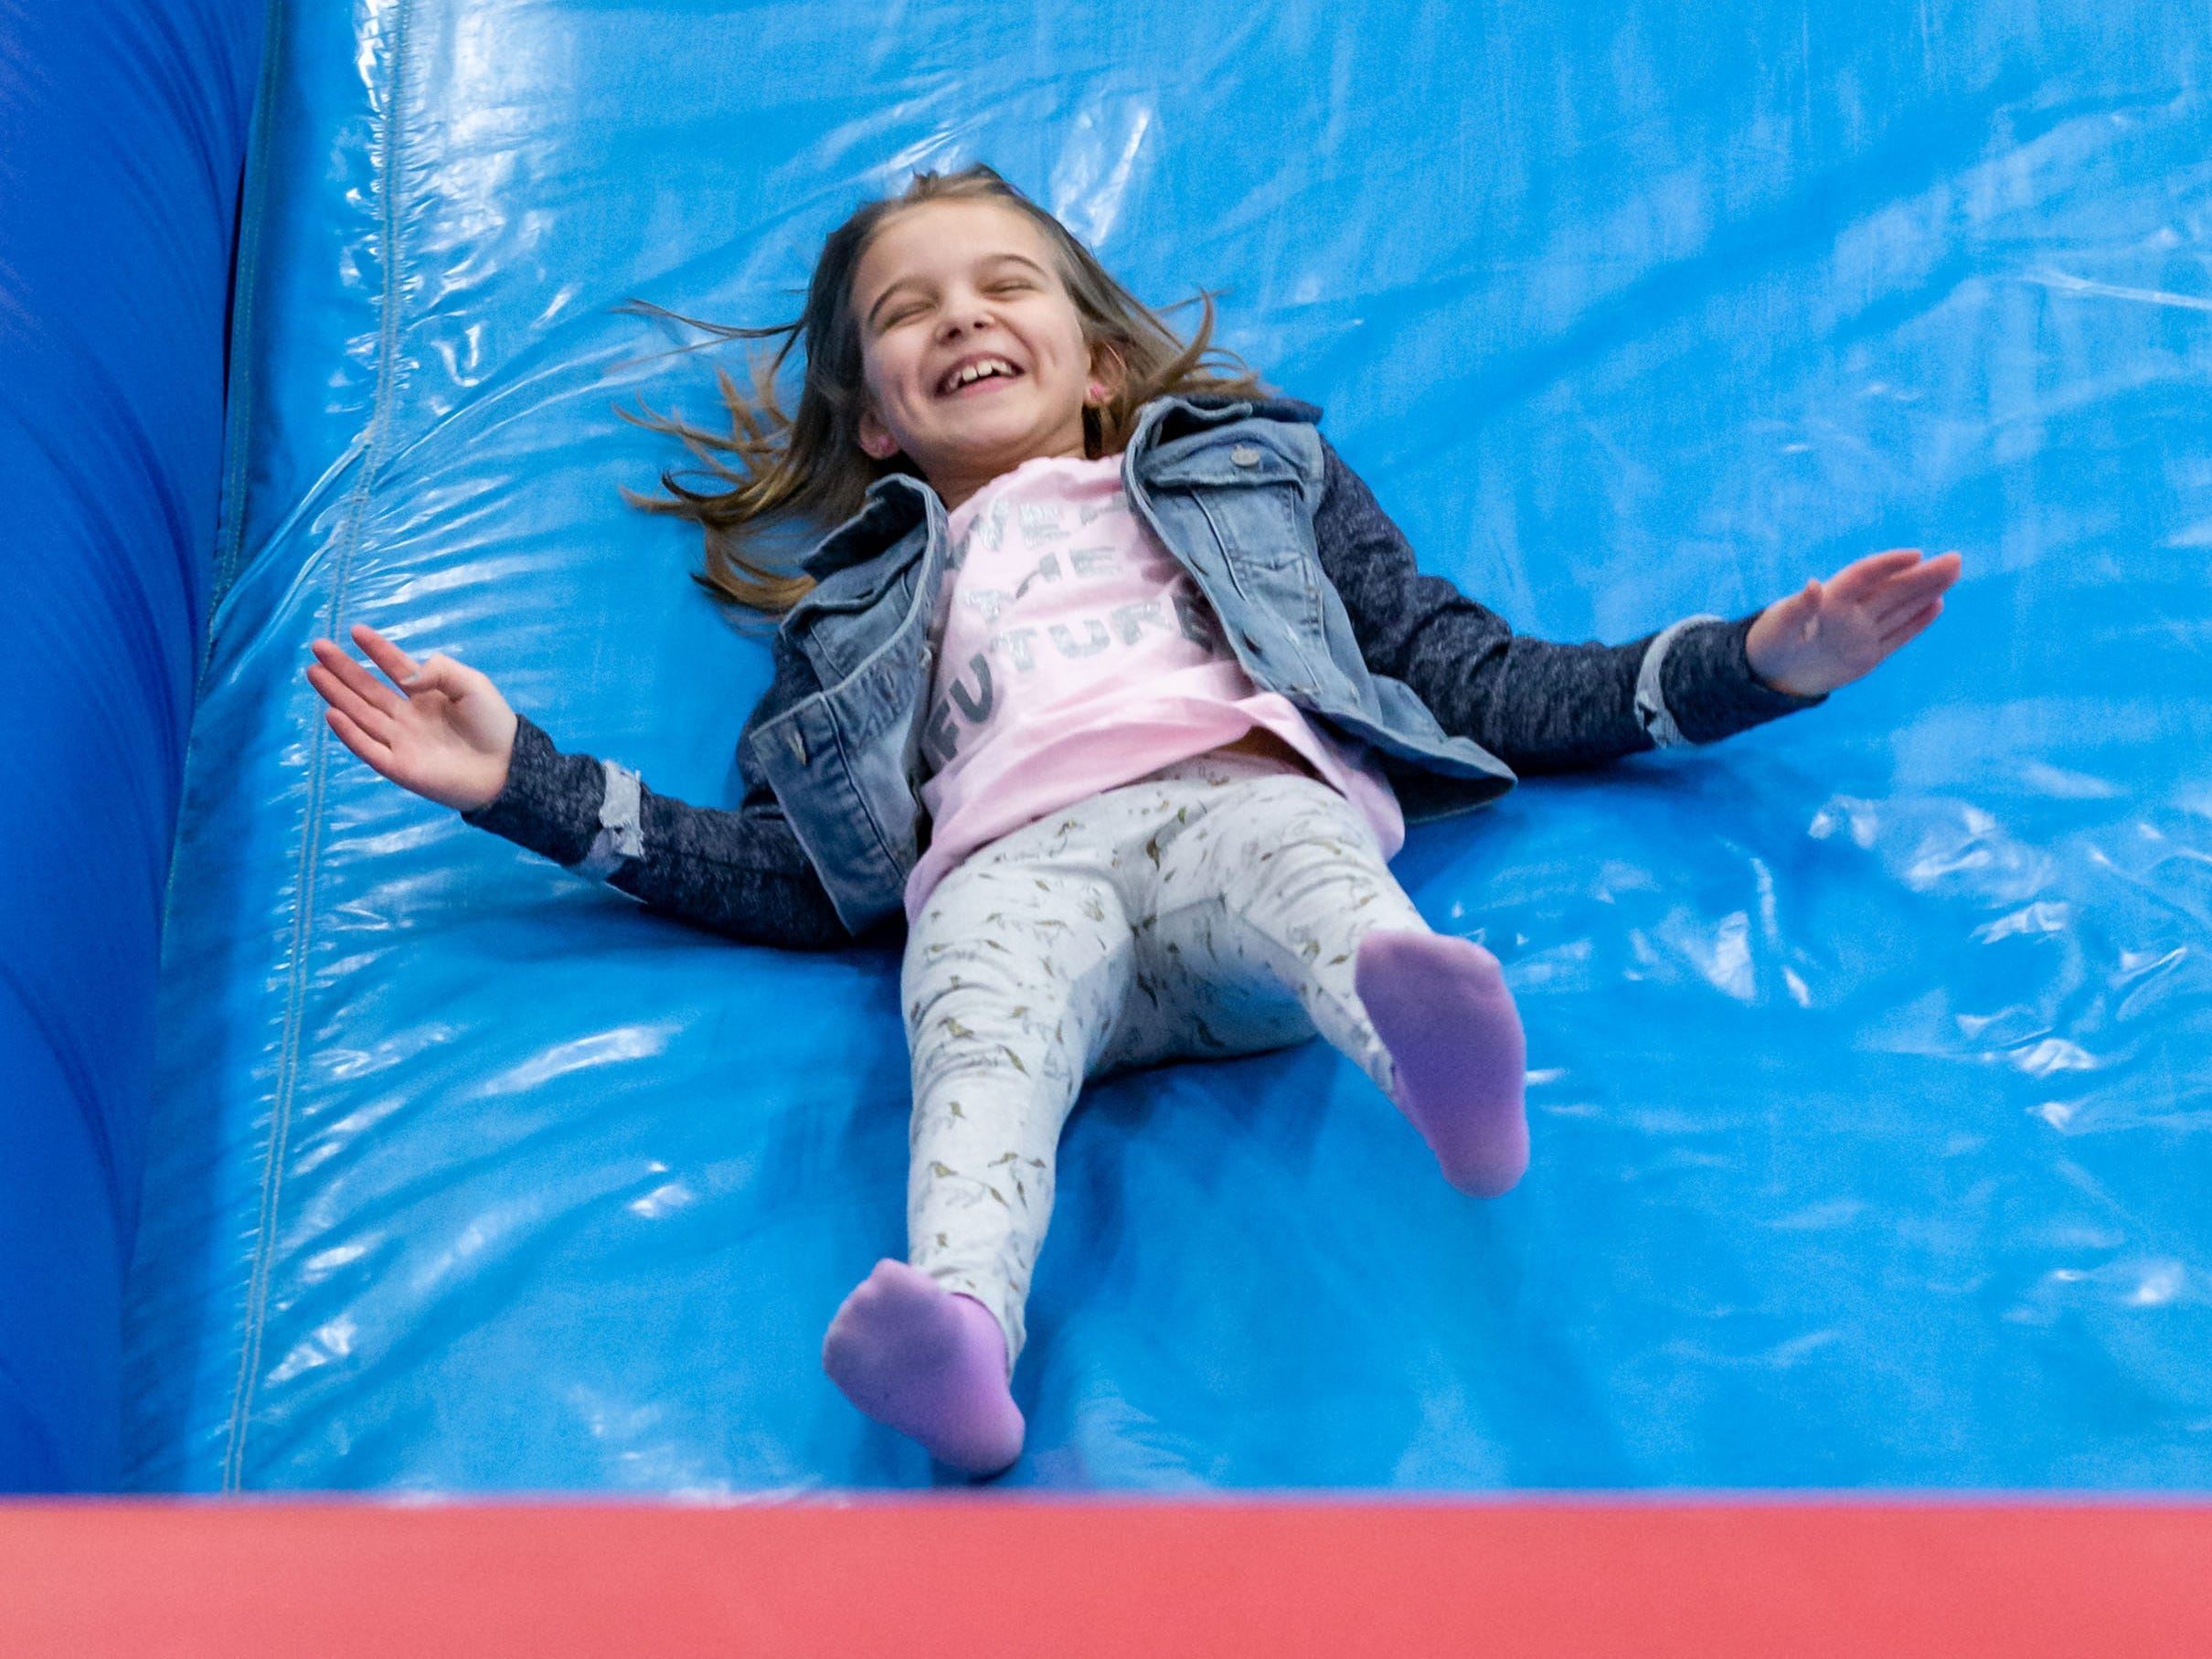 Noelle Petrick, 8, of New Berlin, zips down an inflatable slide during the New Year's Eve Family Night at West Allis Central High School hosted by CAAD - West Allis (the West Allis-West Milwaukee Community Alliance Against Drugs) on Monday evening, Dec. 31, 2018.